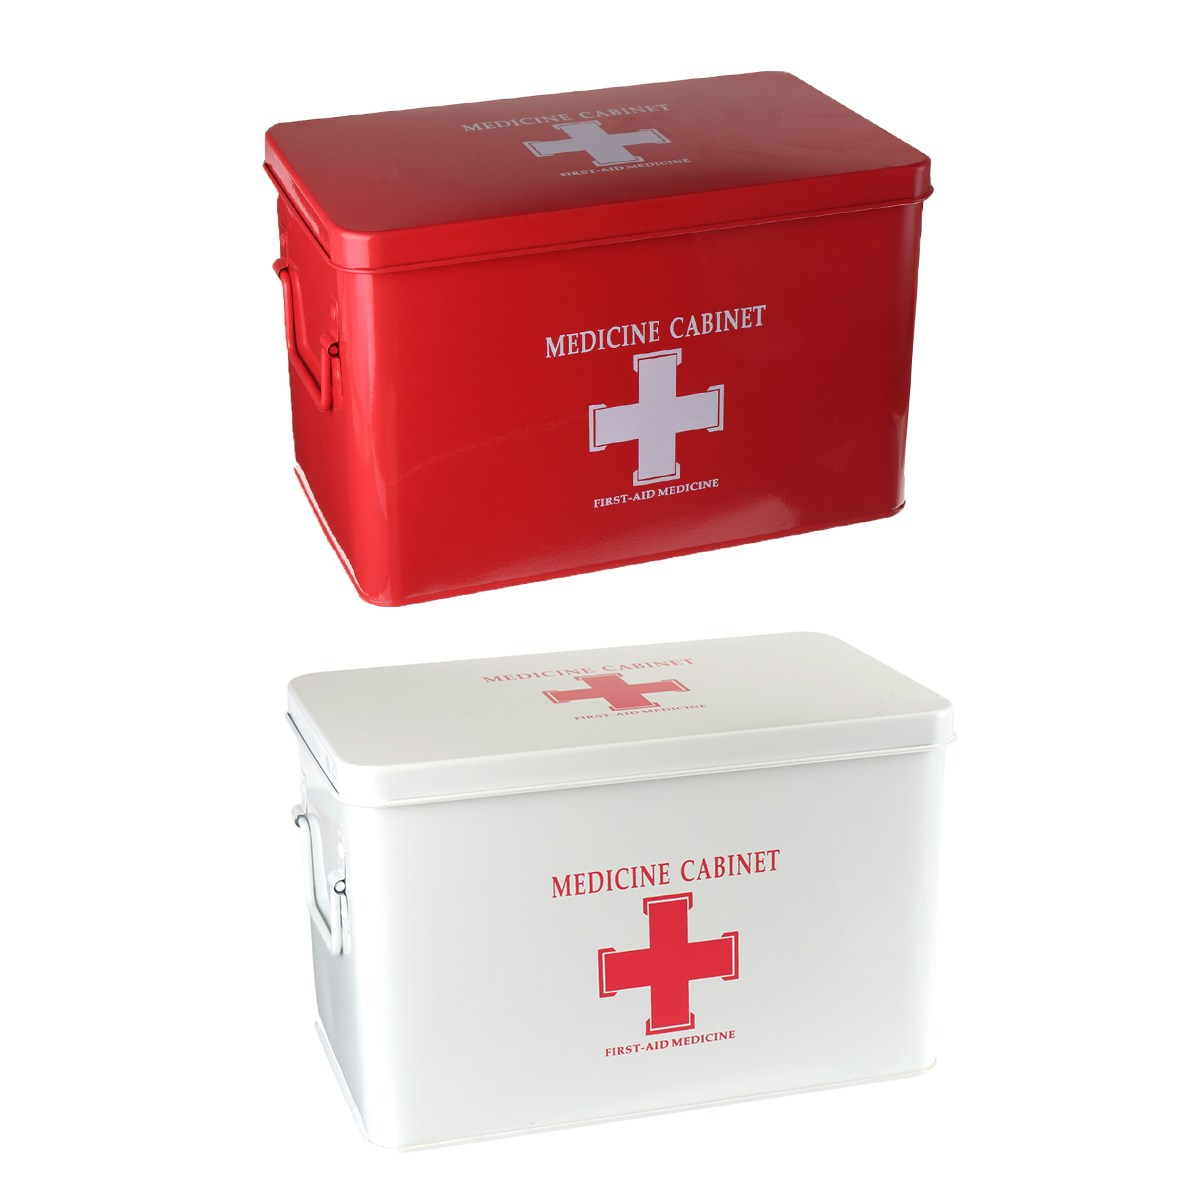 Safurance Metal Medicine Cabinet Multi-layered Family Box First Aid Storage Box Storage Medical Gathering Emergency Kits<br>